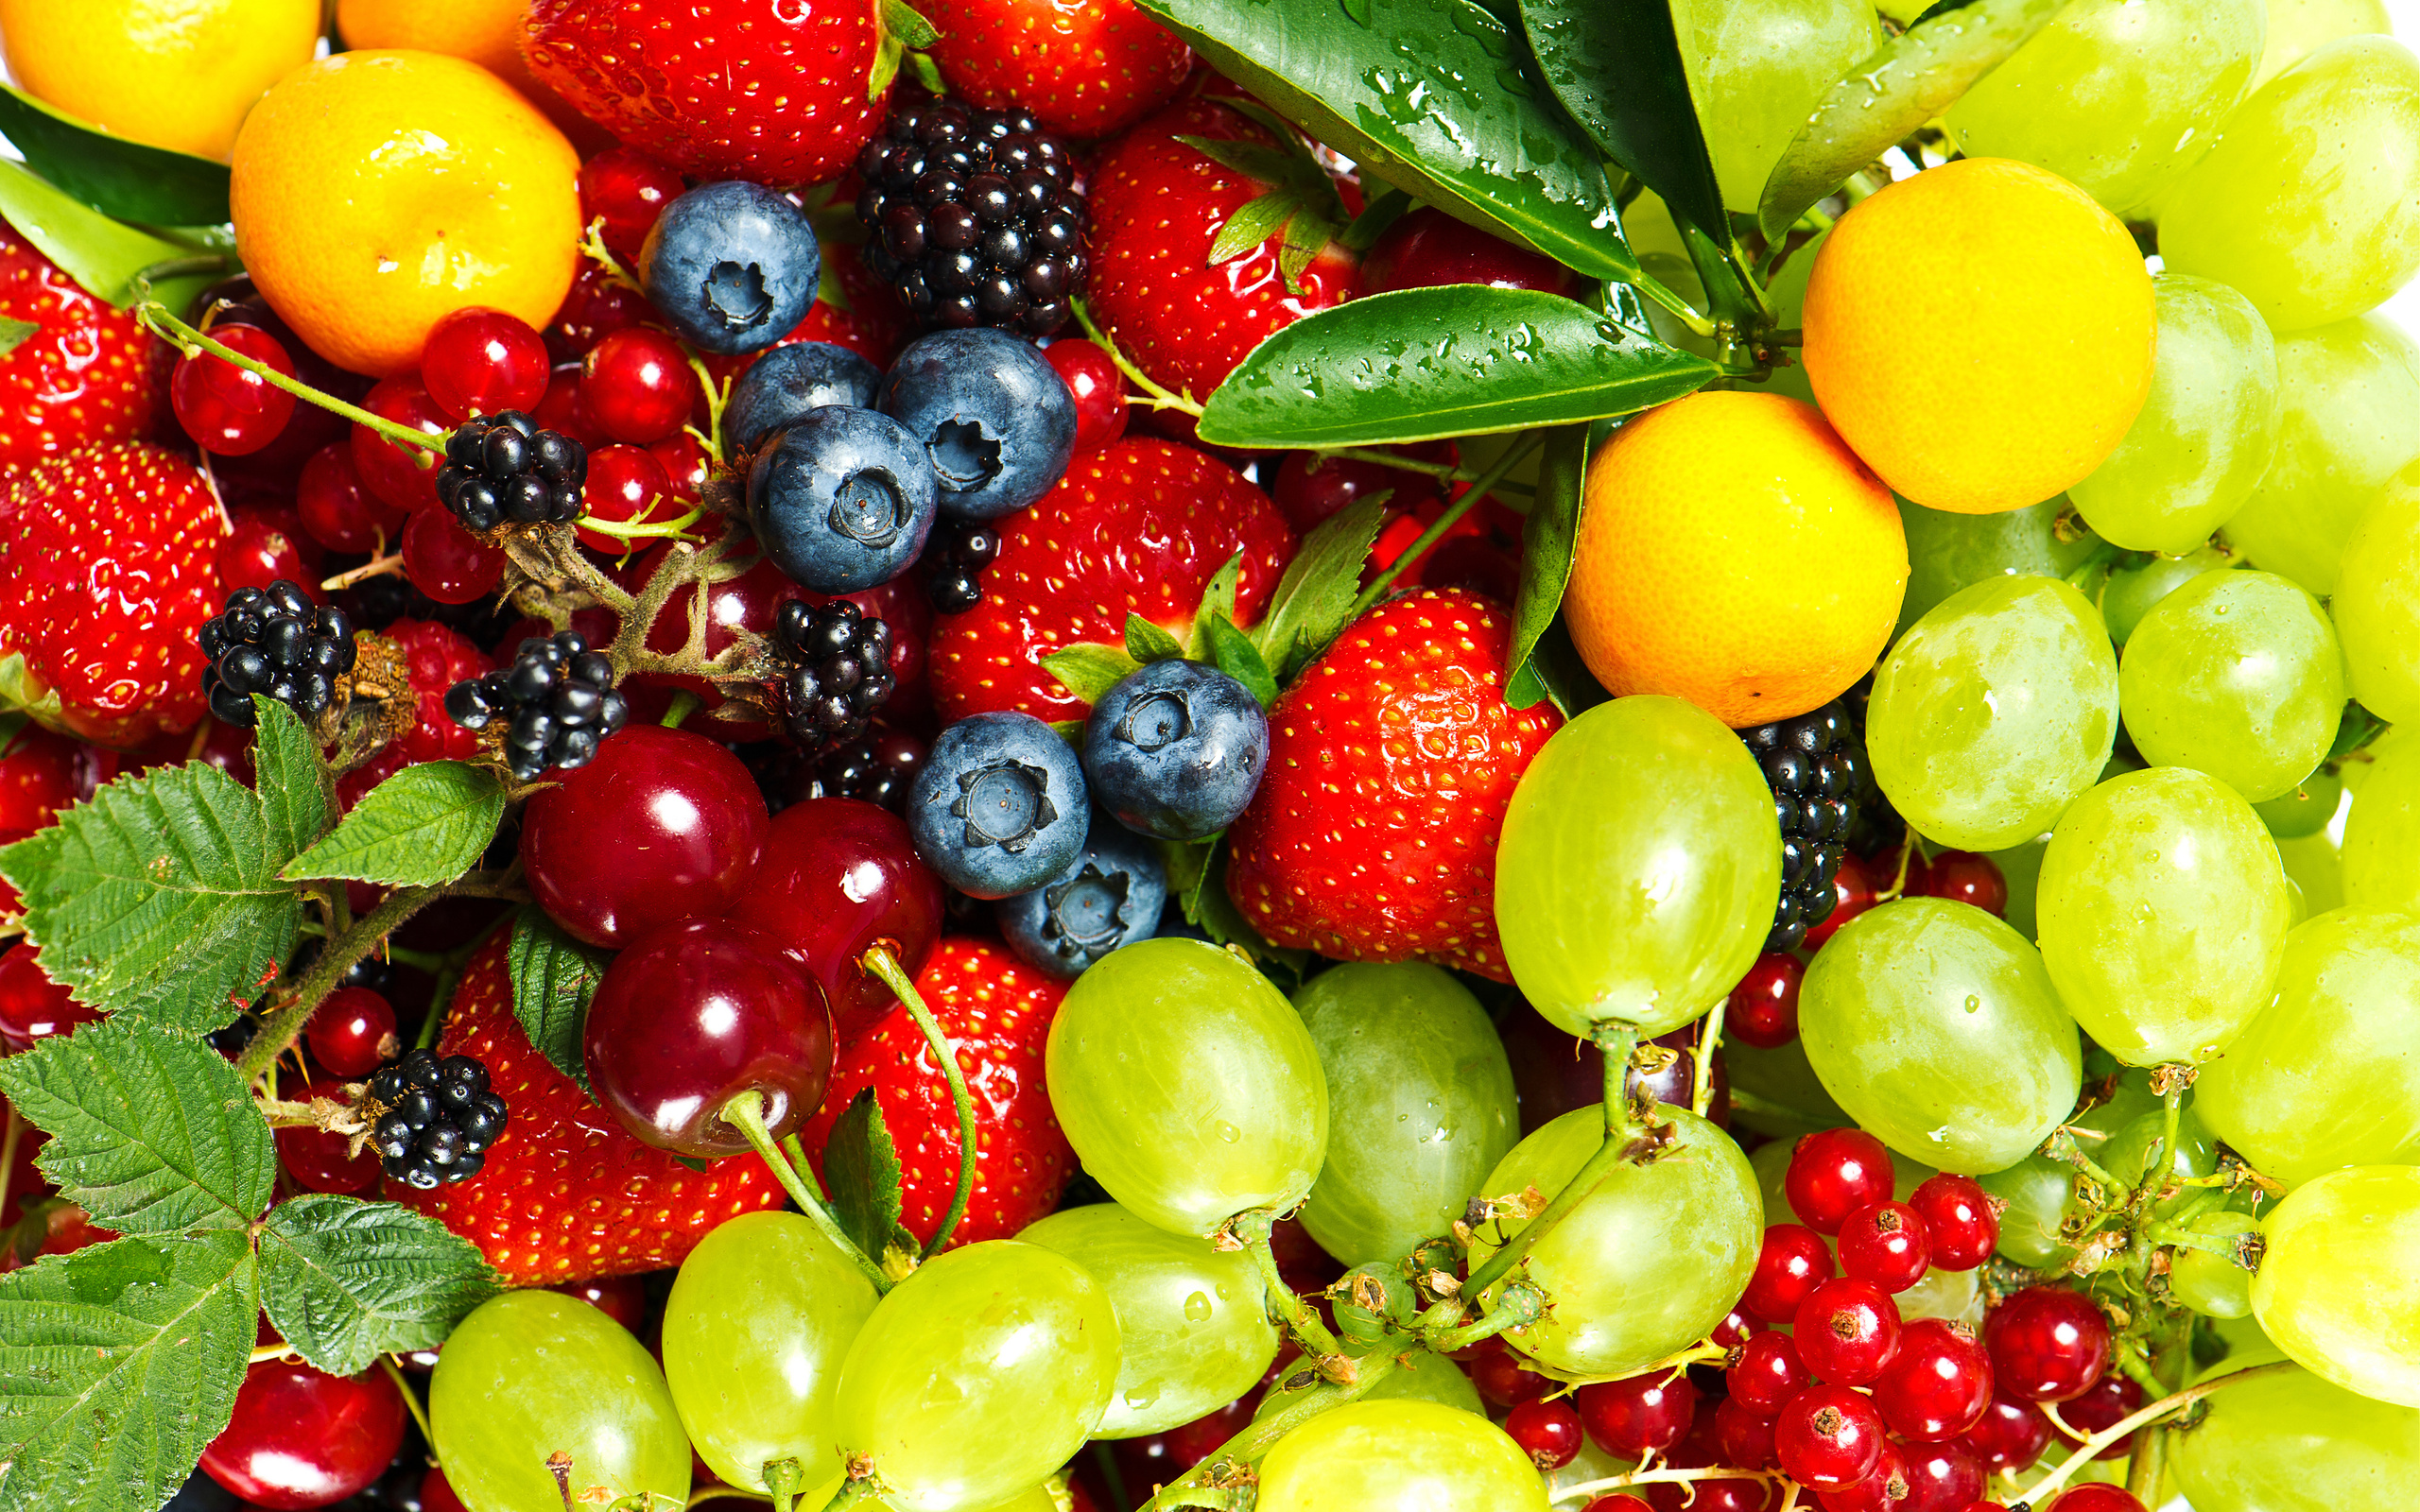 Ready to Eat Fruit 553.36 Kb